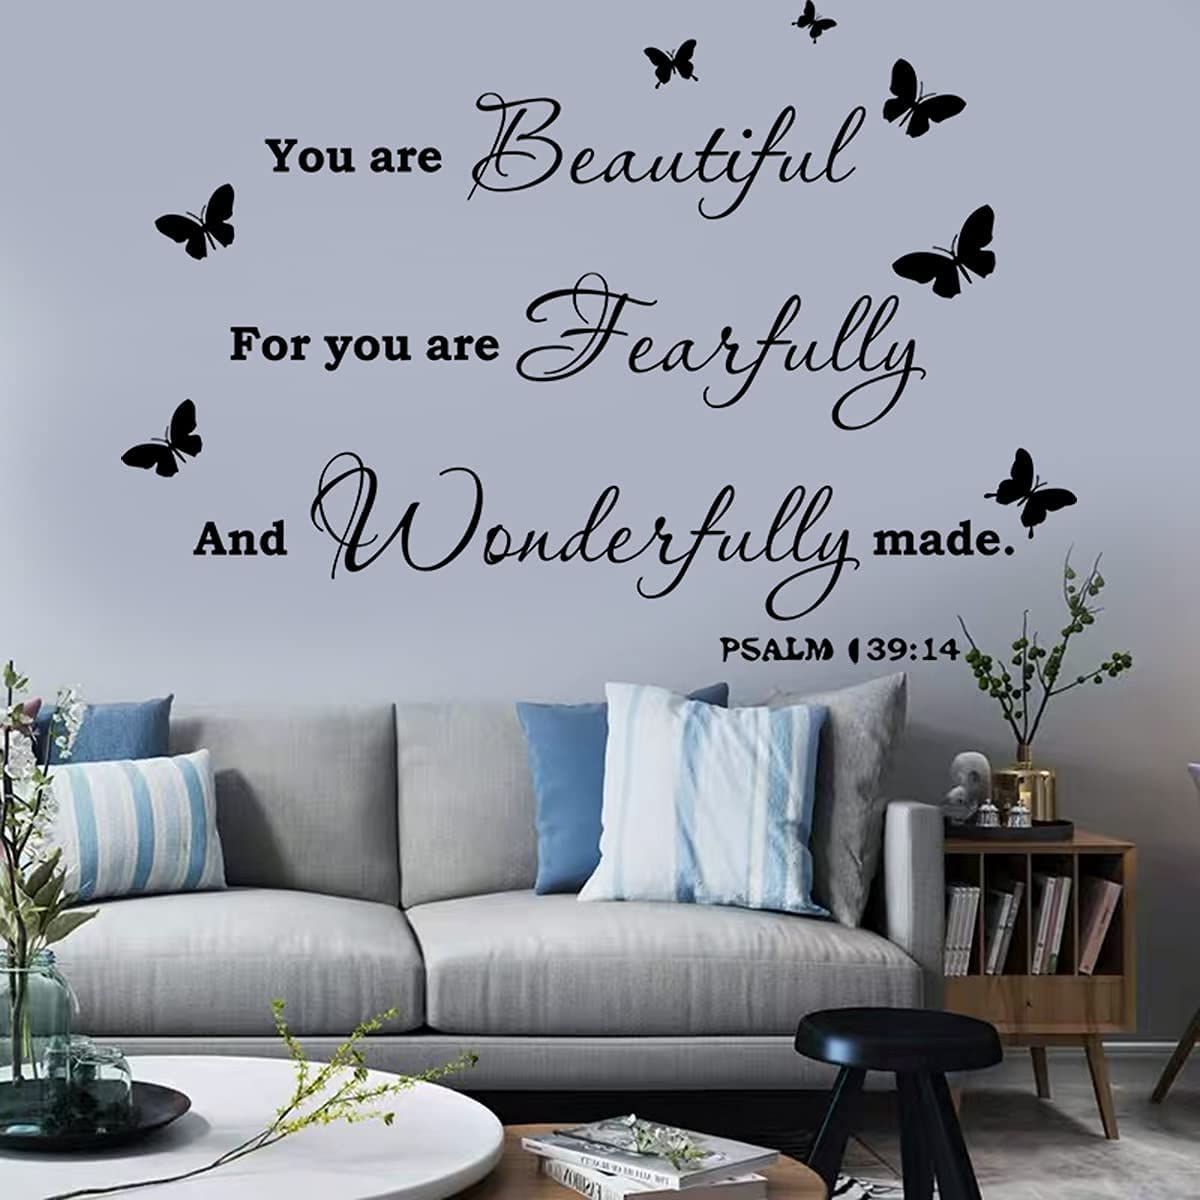 Inspirational Wall Sticker Wall Decor Wall Saying You are Beautiful for You are Fearfully and Wonderfully Wall Quotes Wall Decal for Living Room Bedroom Classroom Office Wall Decoration.